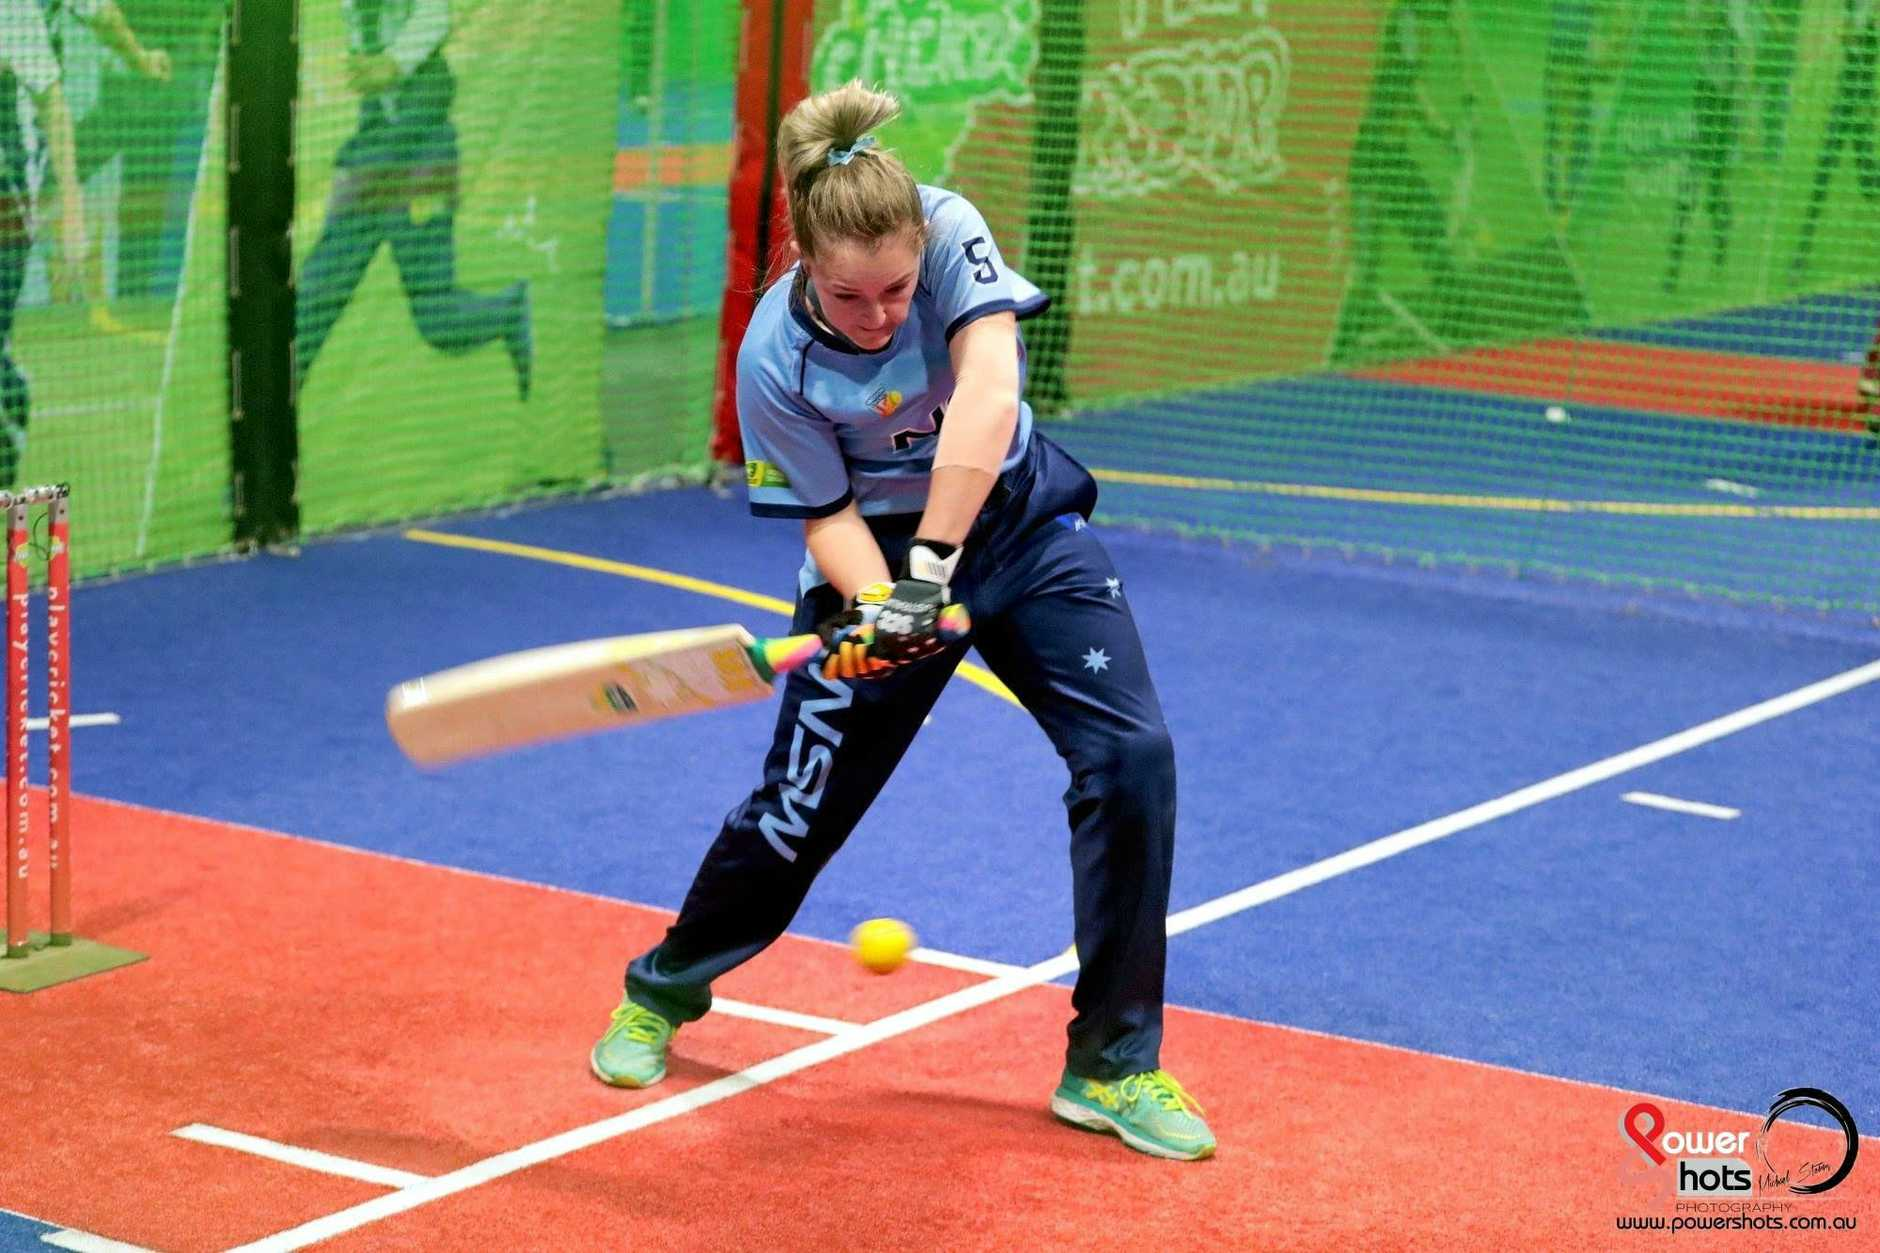 PRECISION: Amy Riddell drives through a delivery during the Indoor Cricket National Championships.